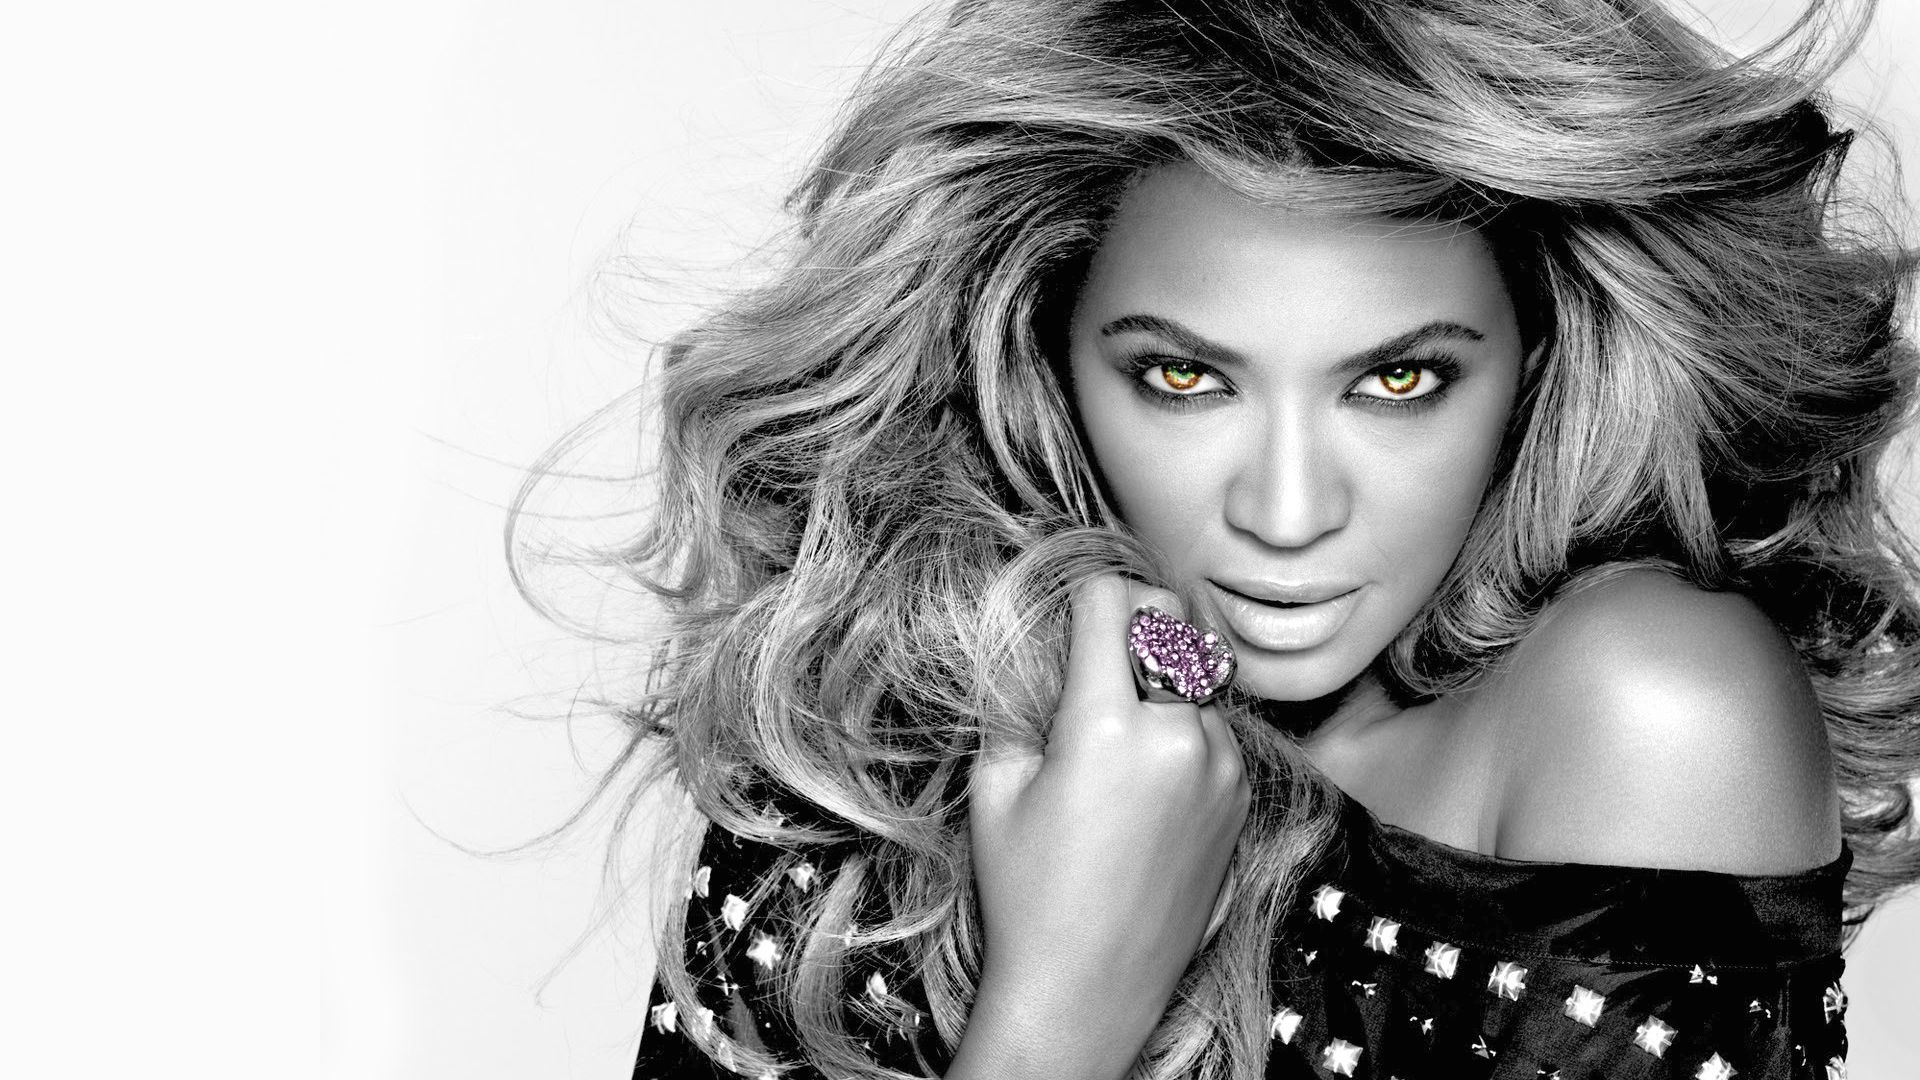 Desktop Beyonce HD Wallpapers Images Free.